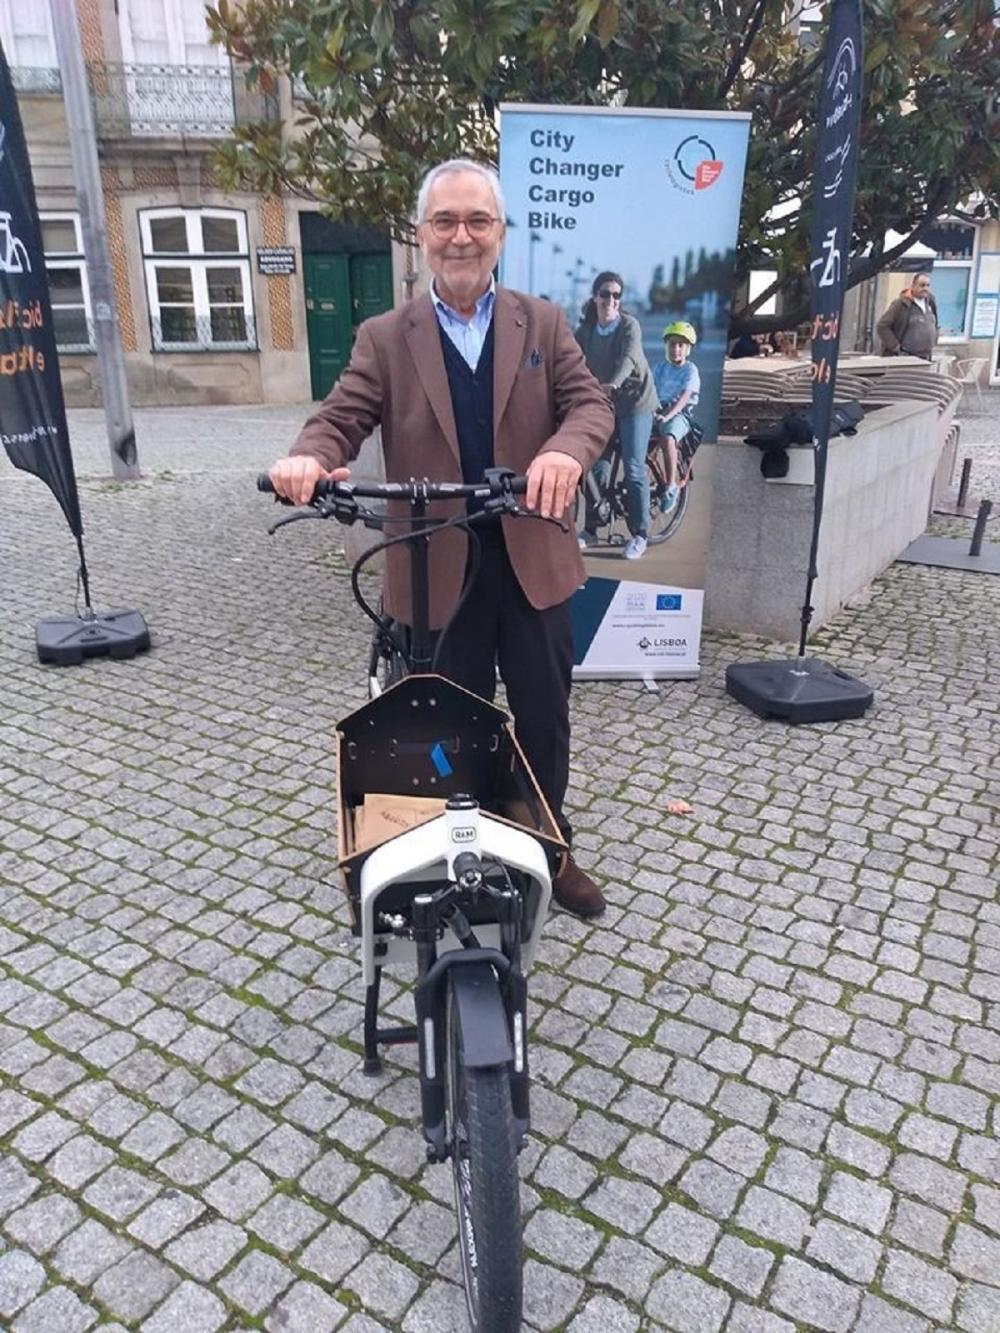 A Cargo Bike Smile from the Mobility Deputy Mayor of Vila Real